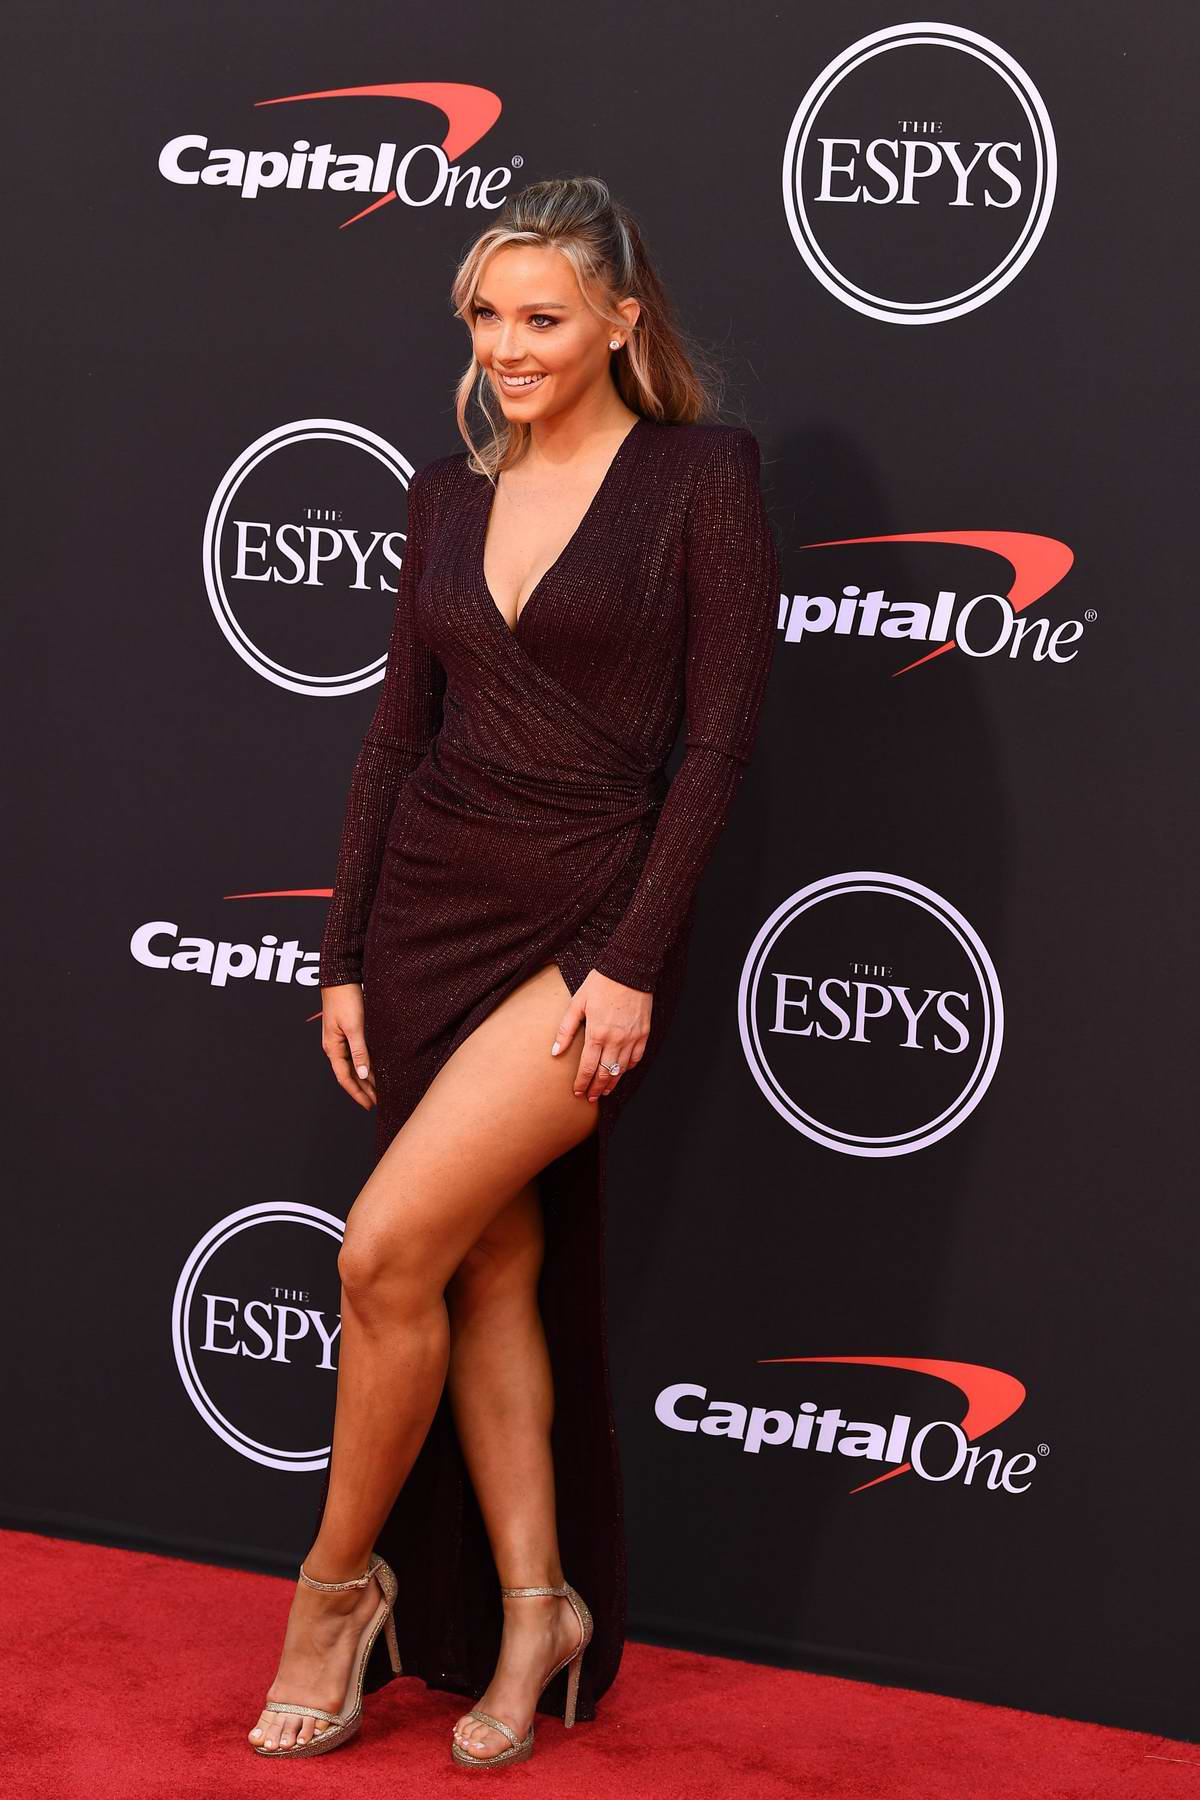 Camille Kostek attends the 2019 ESPY Awards at the Microsoft Theatre in Los Angeles